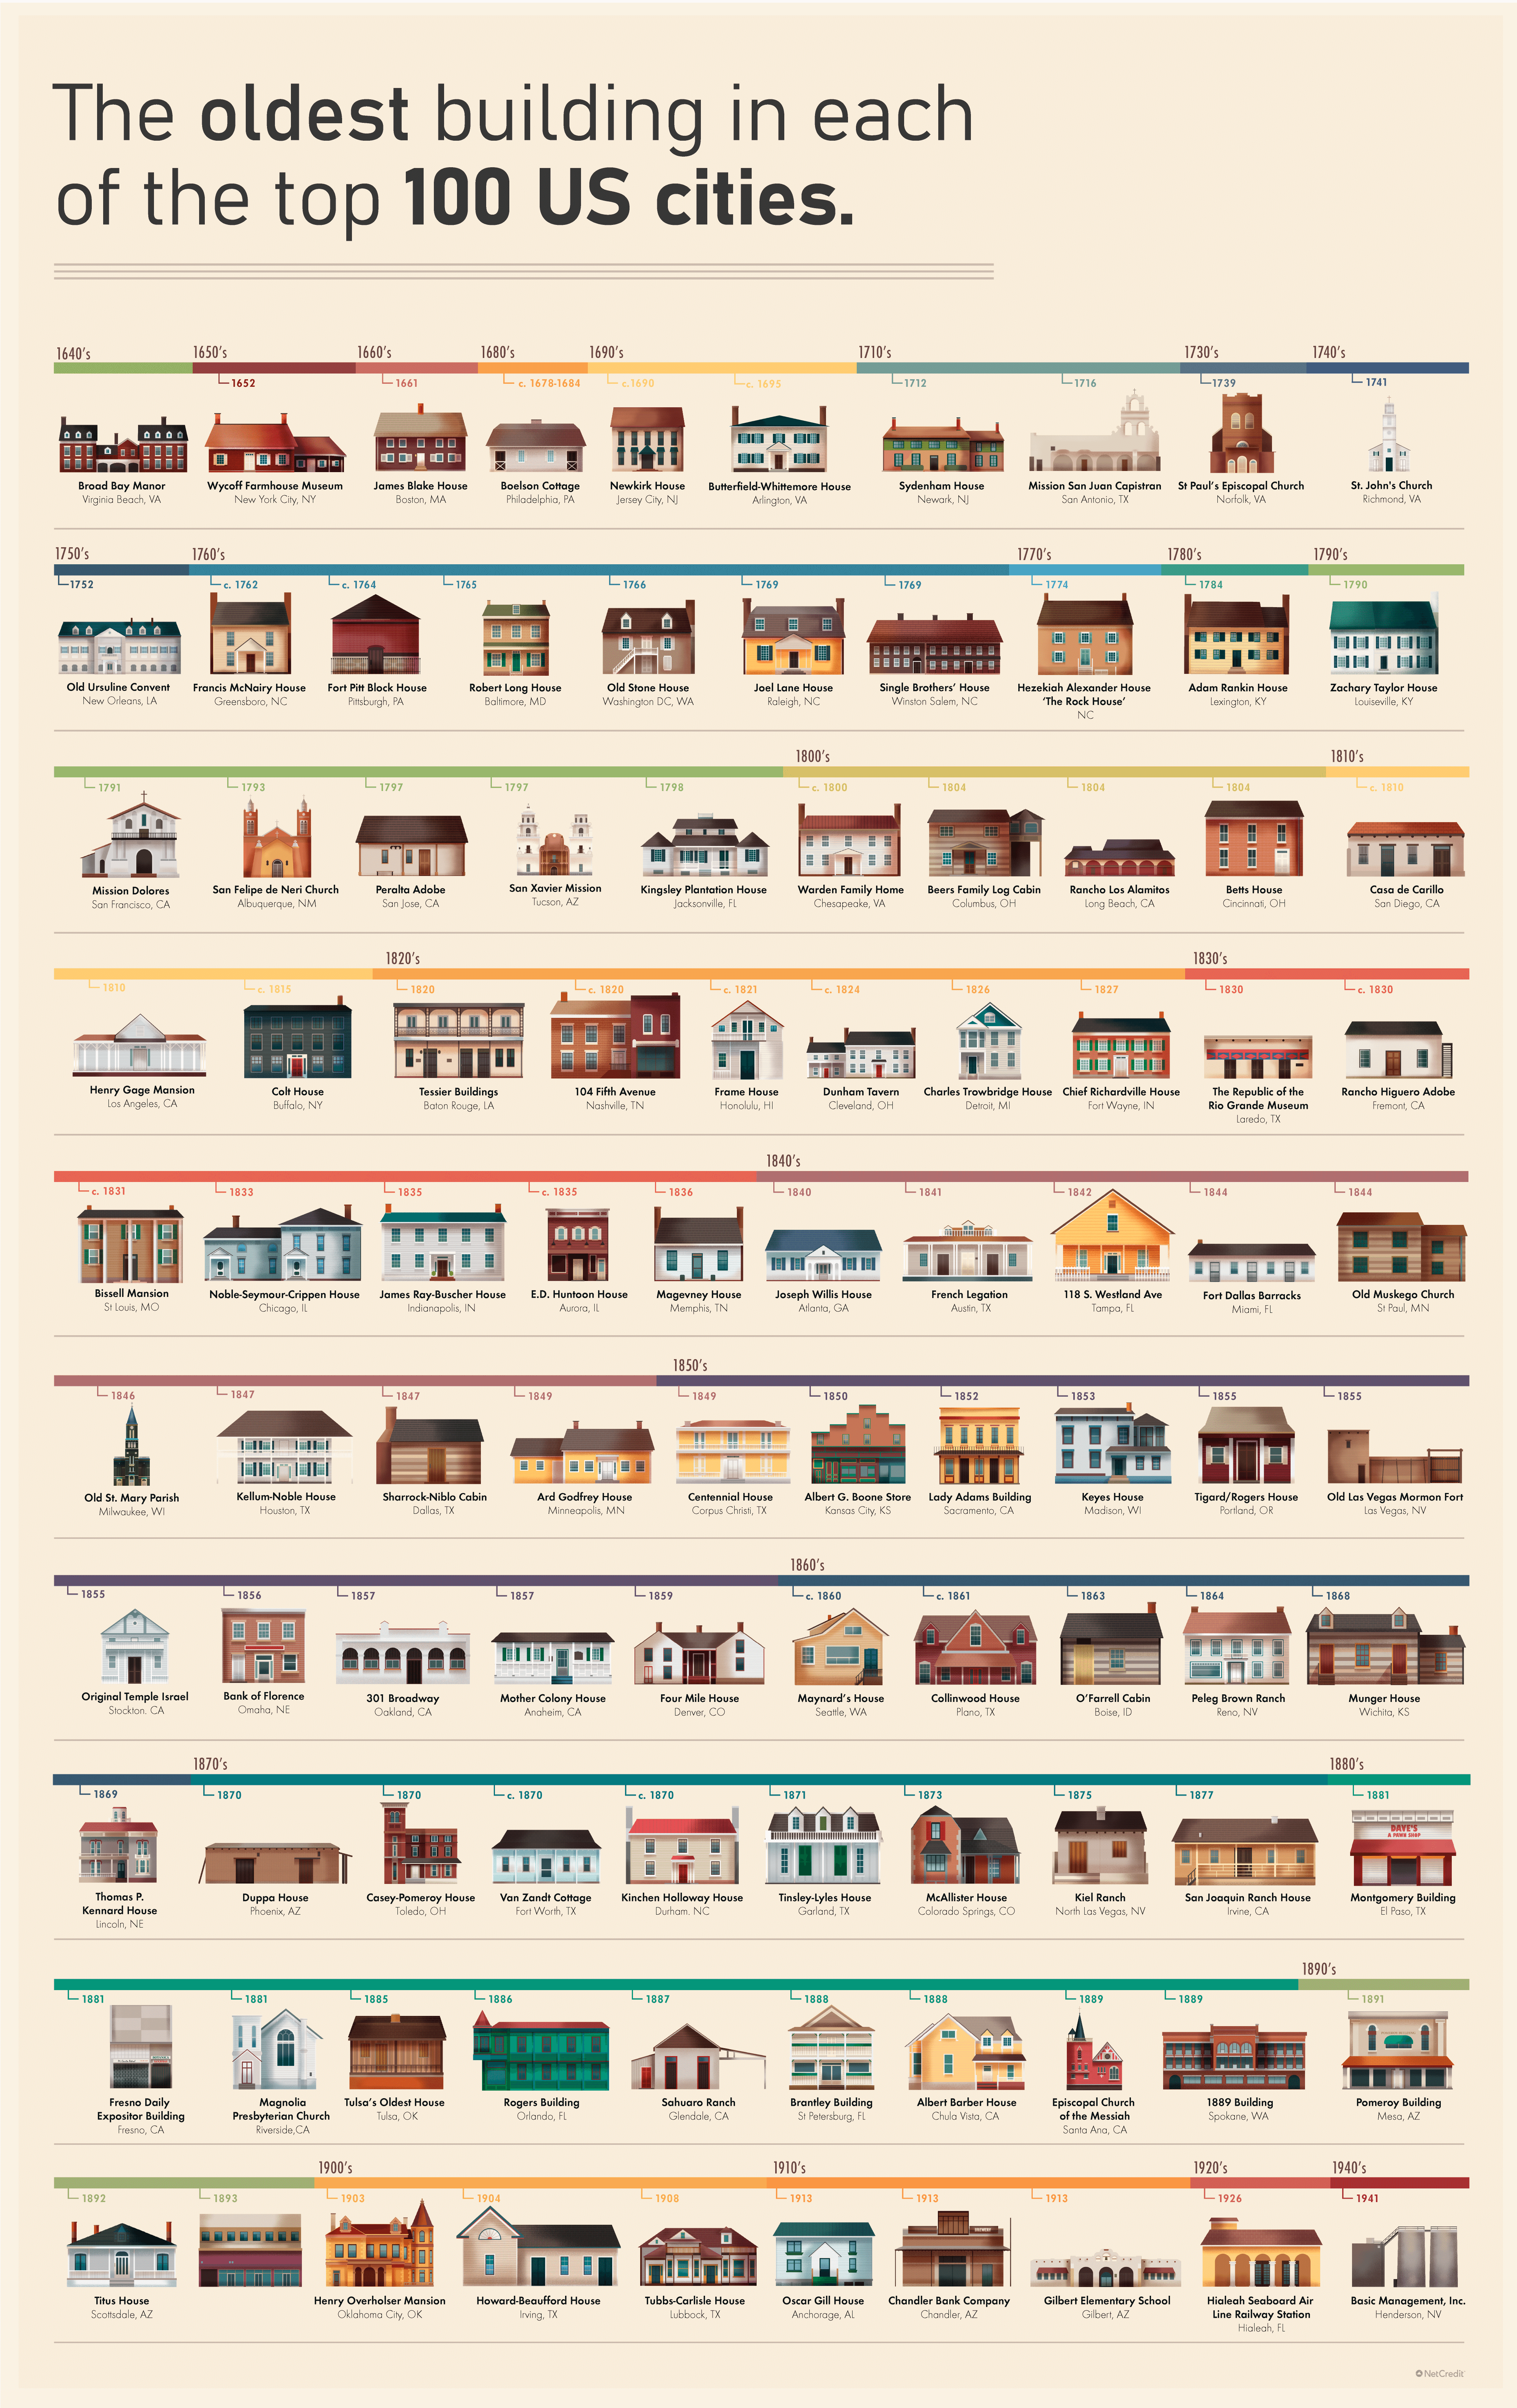 The oldest building in each of the top 100 US cities